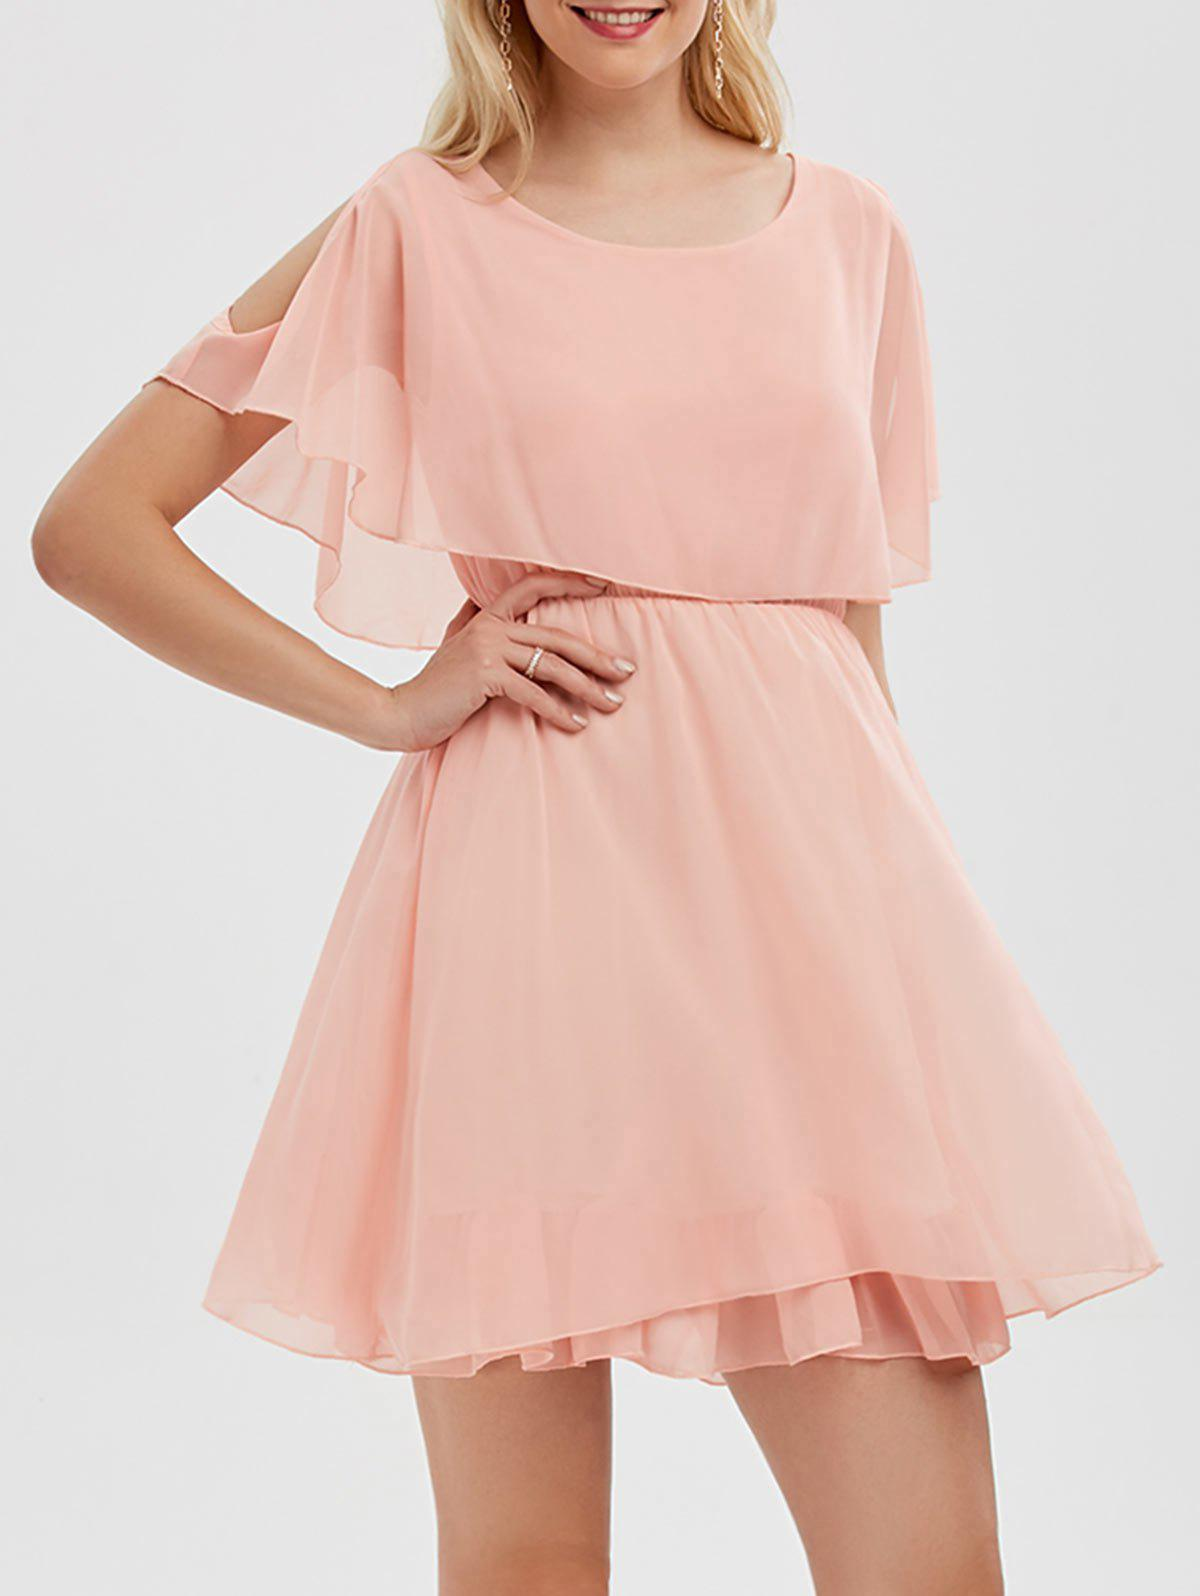 Ruffle Chiffon Cold Shoulder Mini Dress - Rose 2XL